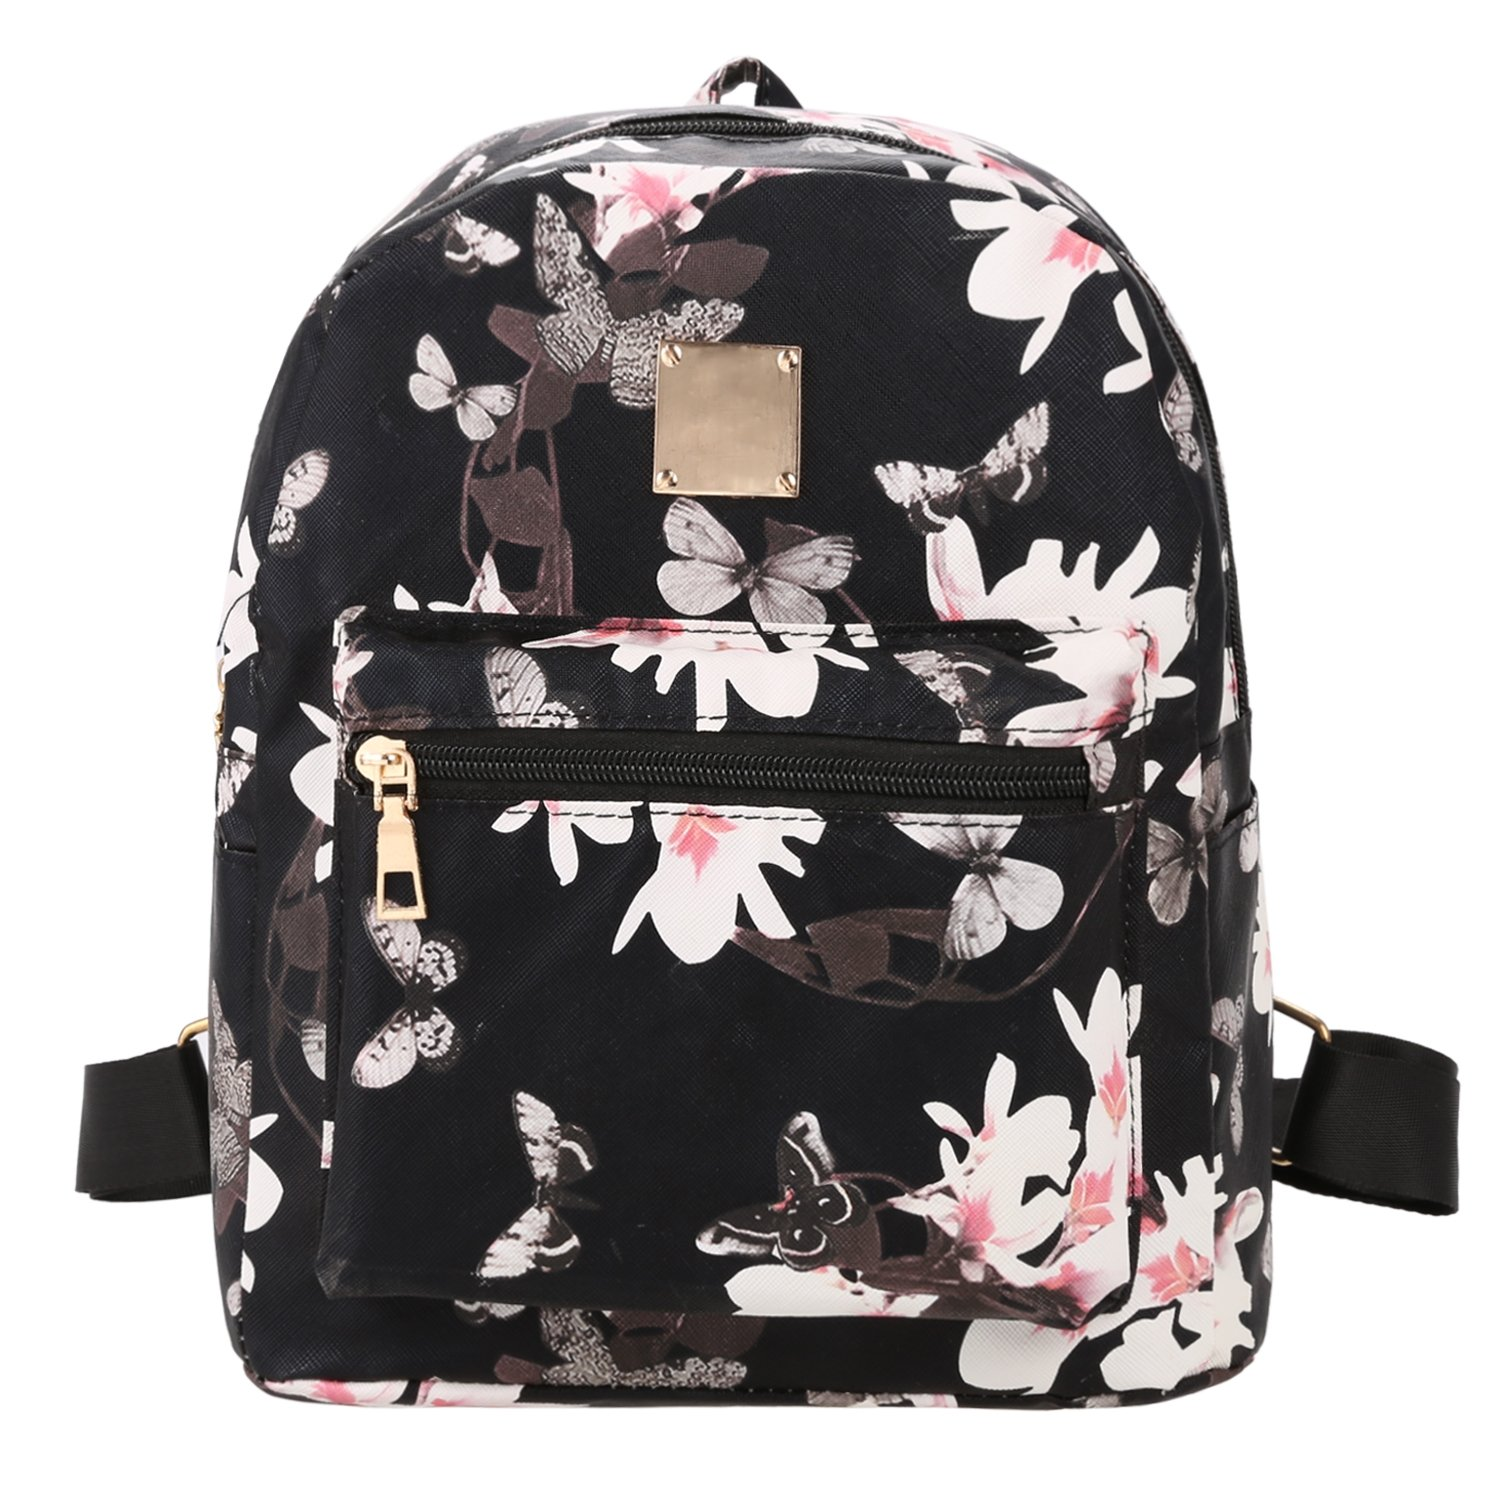 Black Floral Print Travel Vintage Style Synthetic Leather Backpack